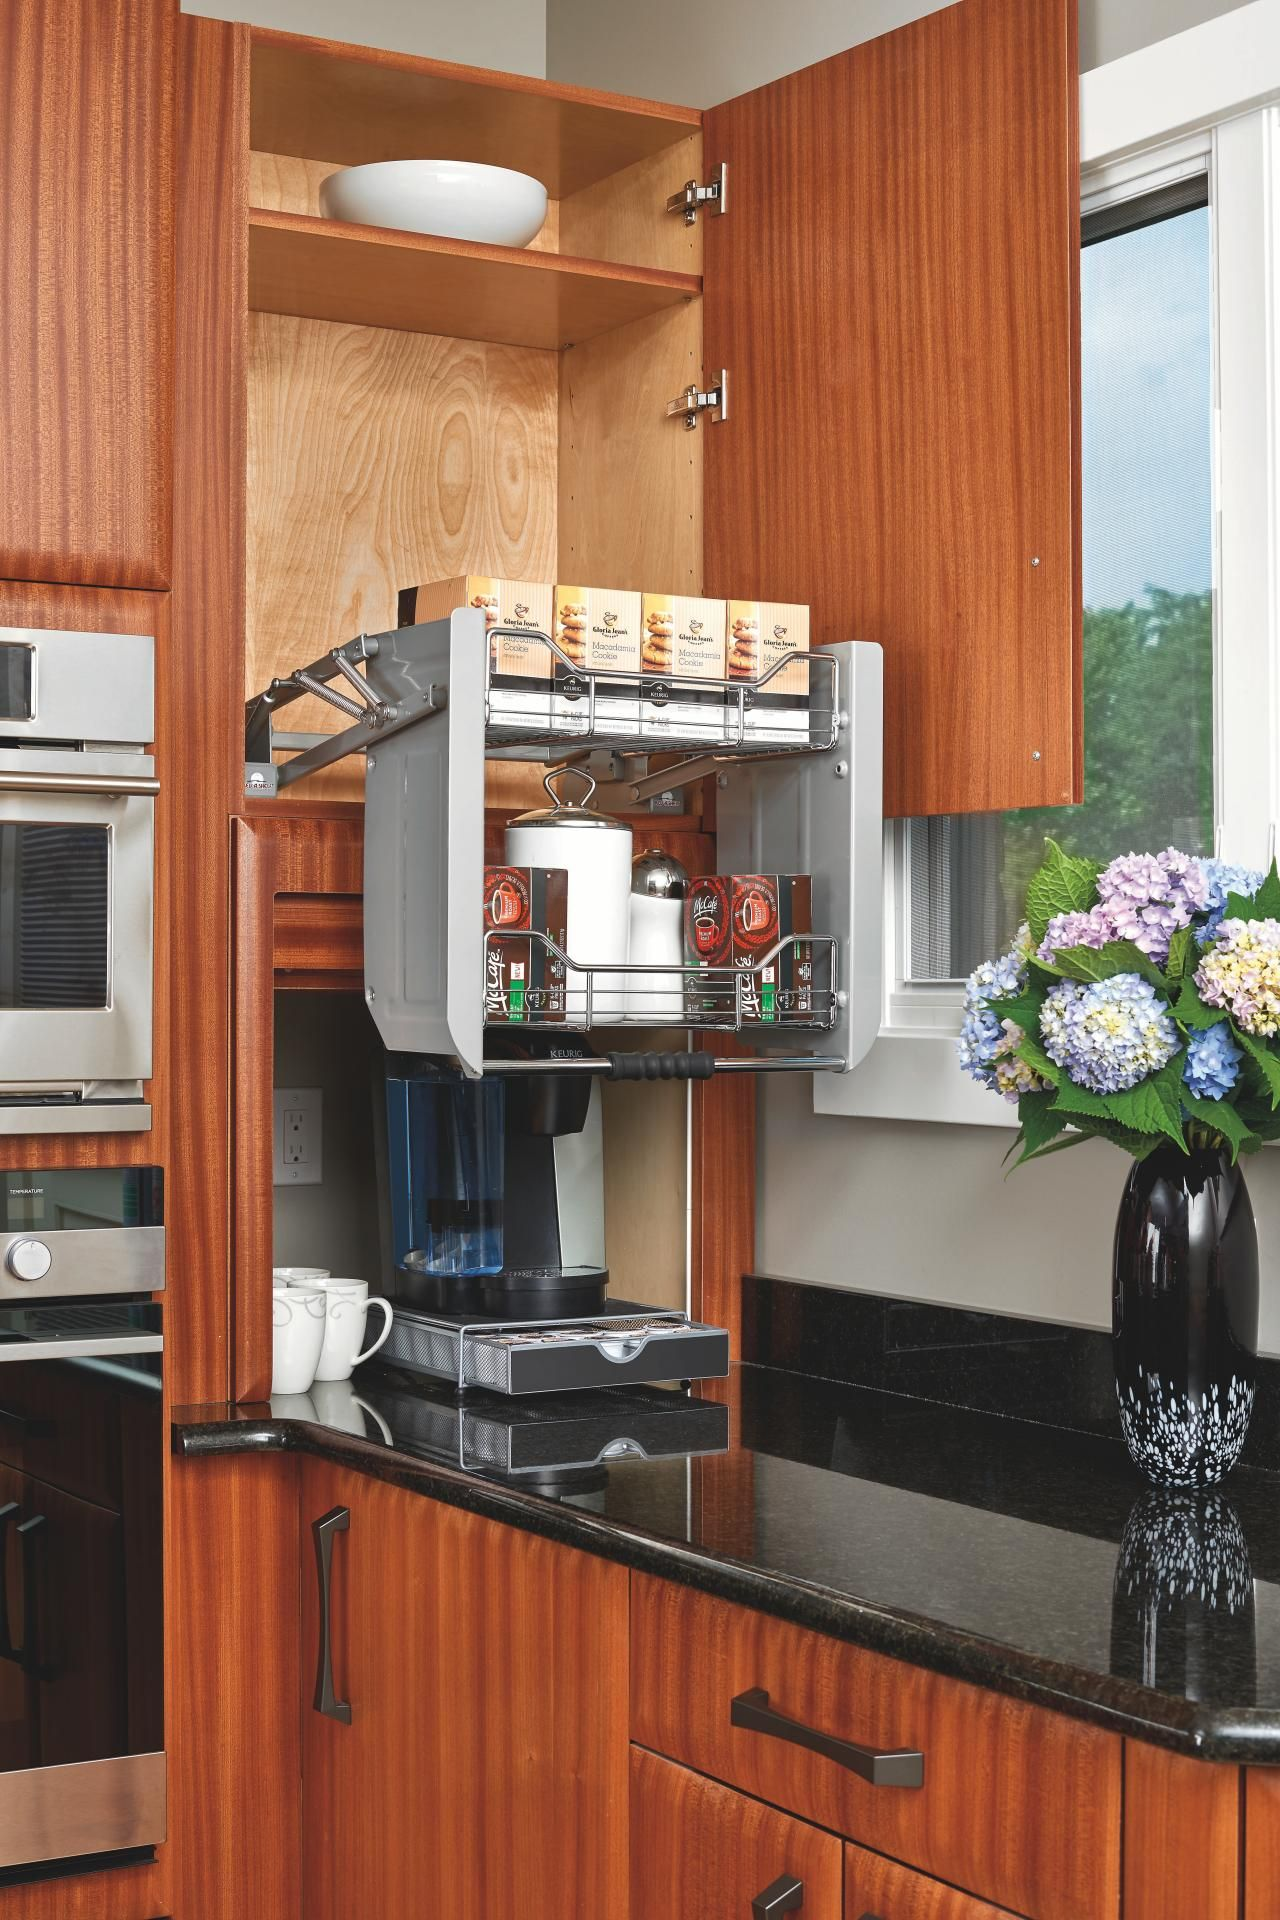 Pull Down Shelf In Kitchen Cabinet Upper Kitchen Cabinets Kitchen Trends Interior Design Kitchen